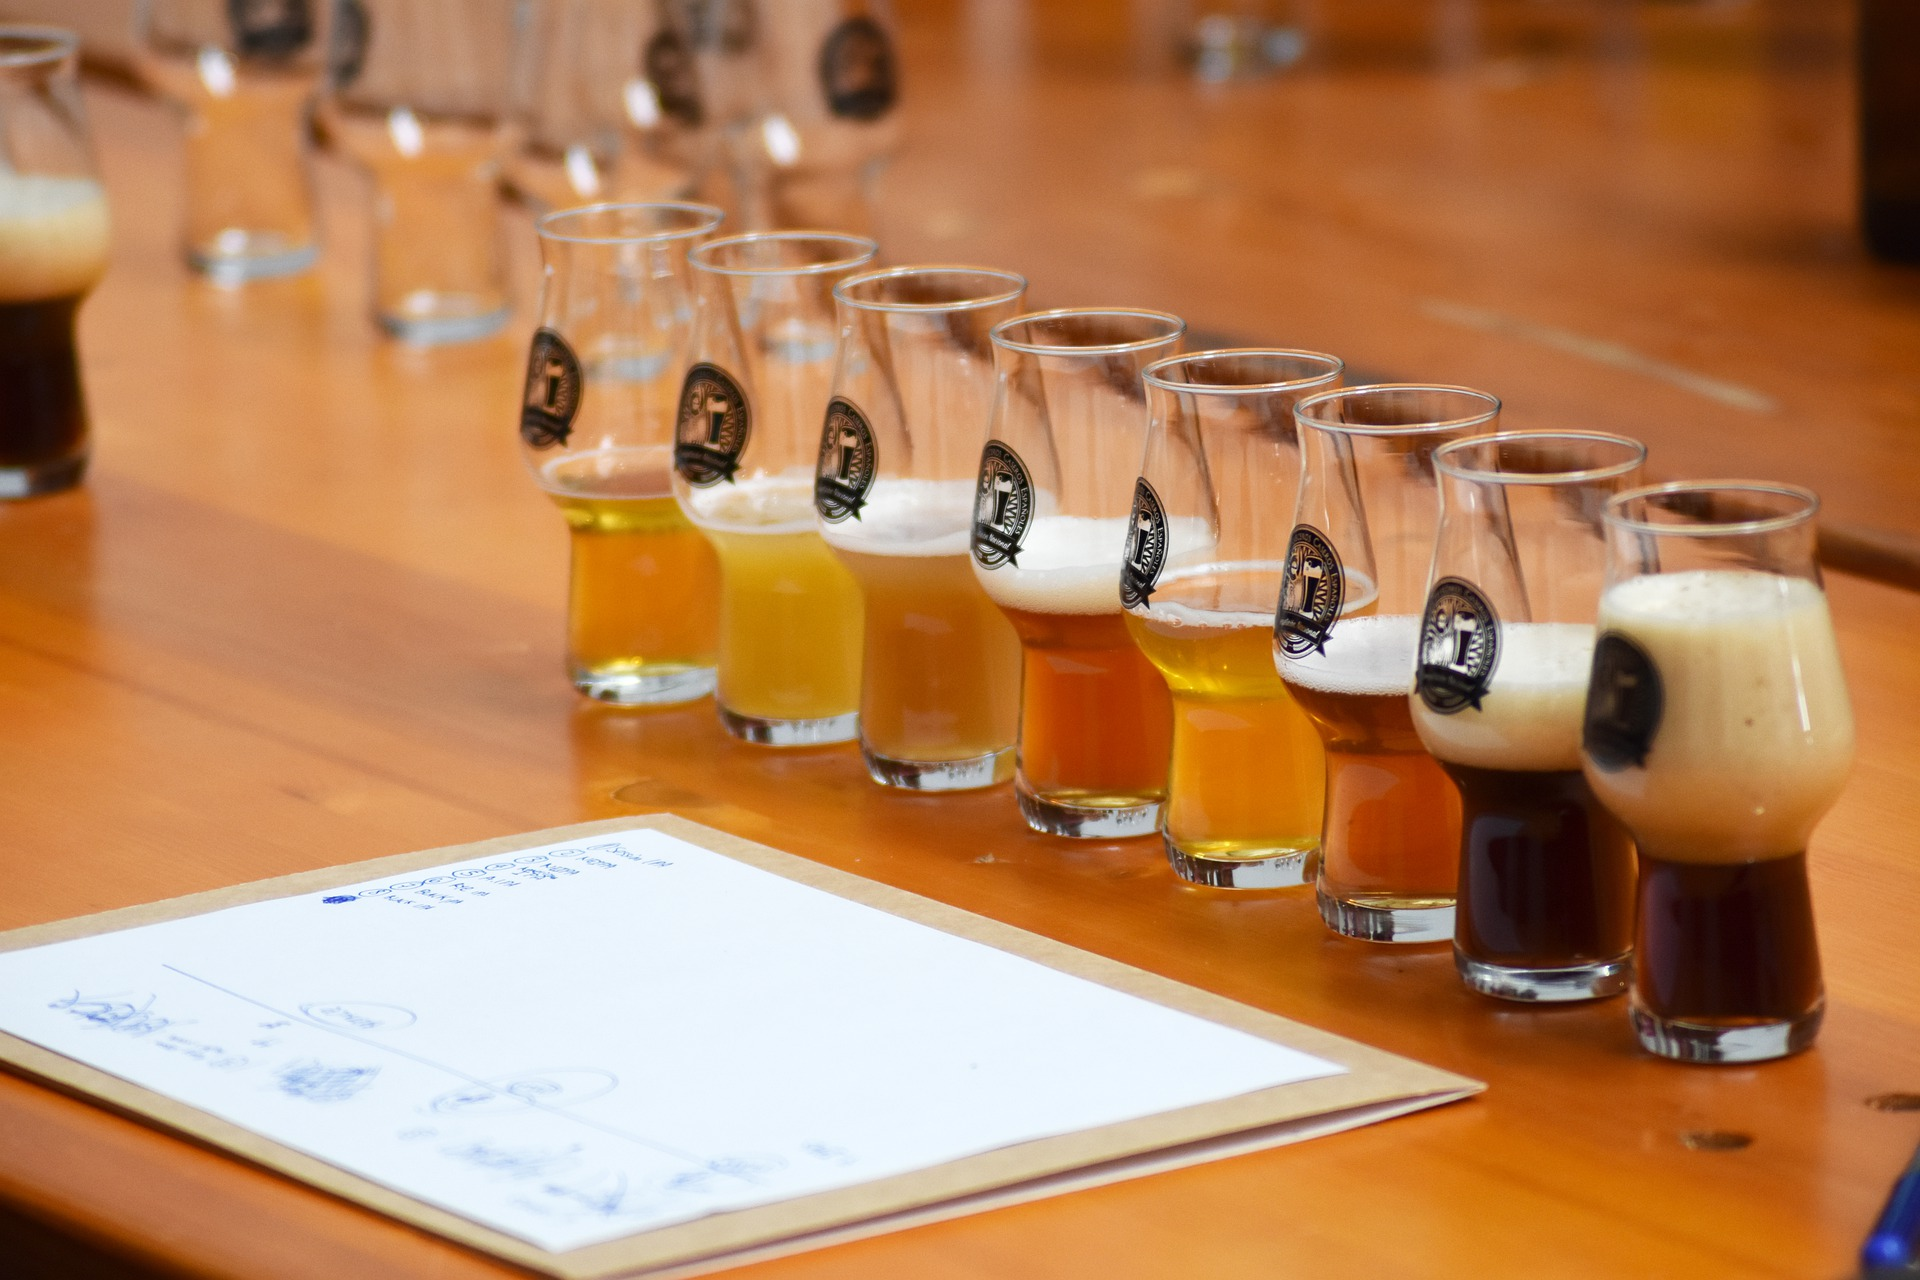 Introduction to Beer History and Professional Evaluation Techniques